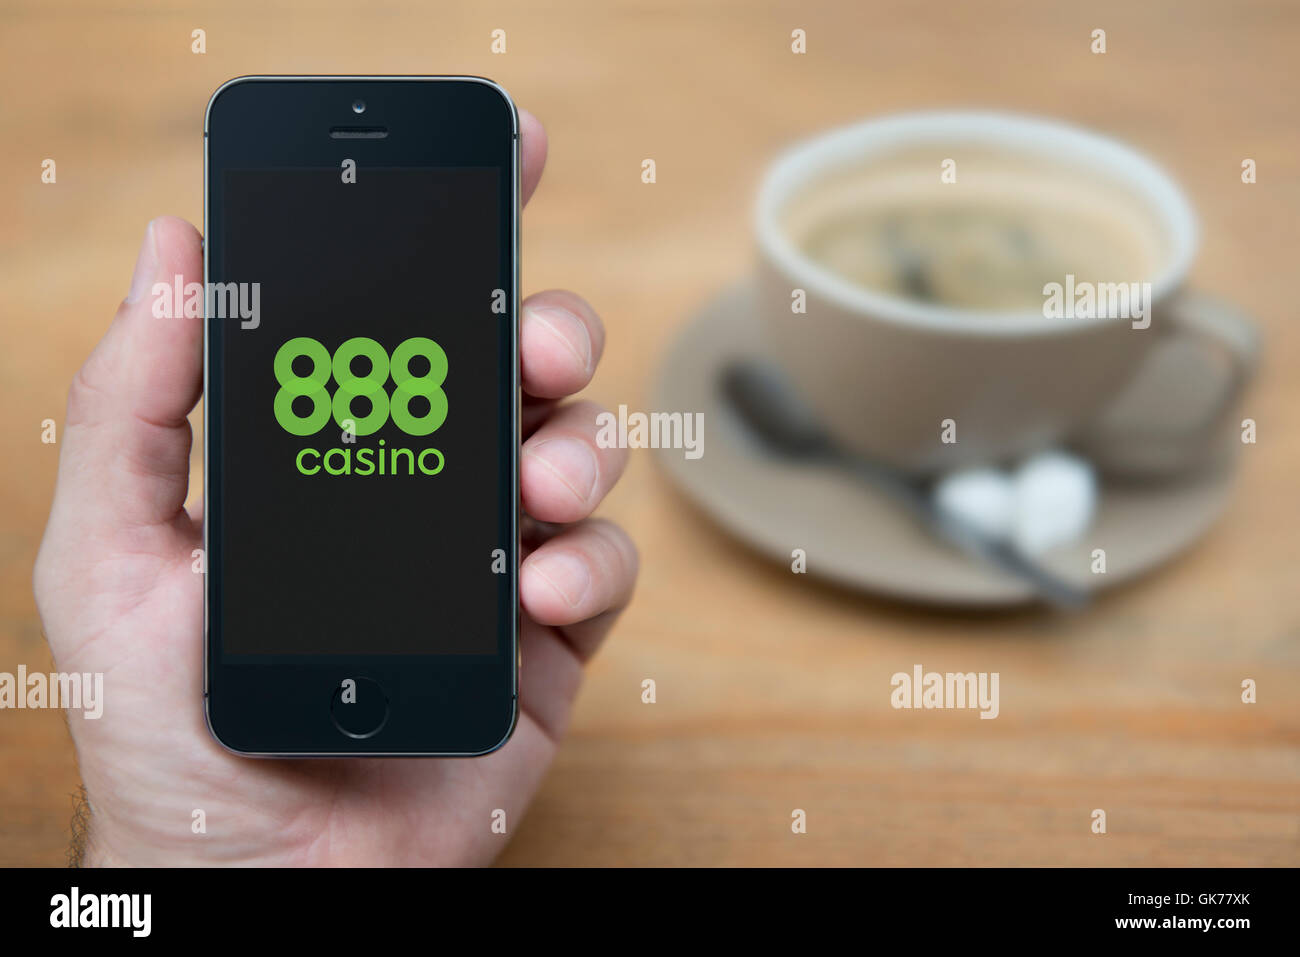 A man looks at his iPhone which displays the 888 Casino logo, while sat with a cup of coffee (Editorial use only). - Stock Image